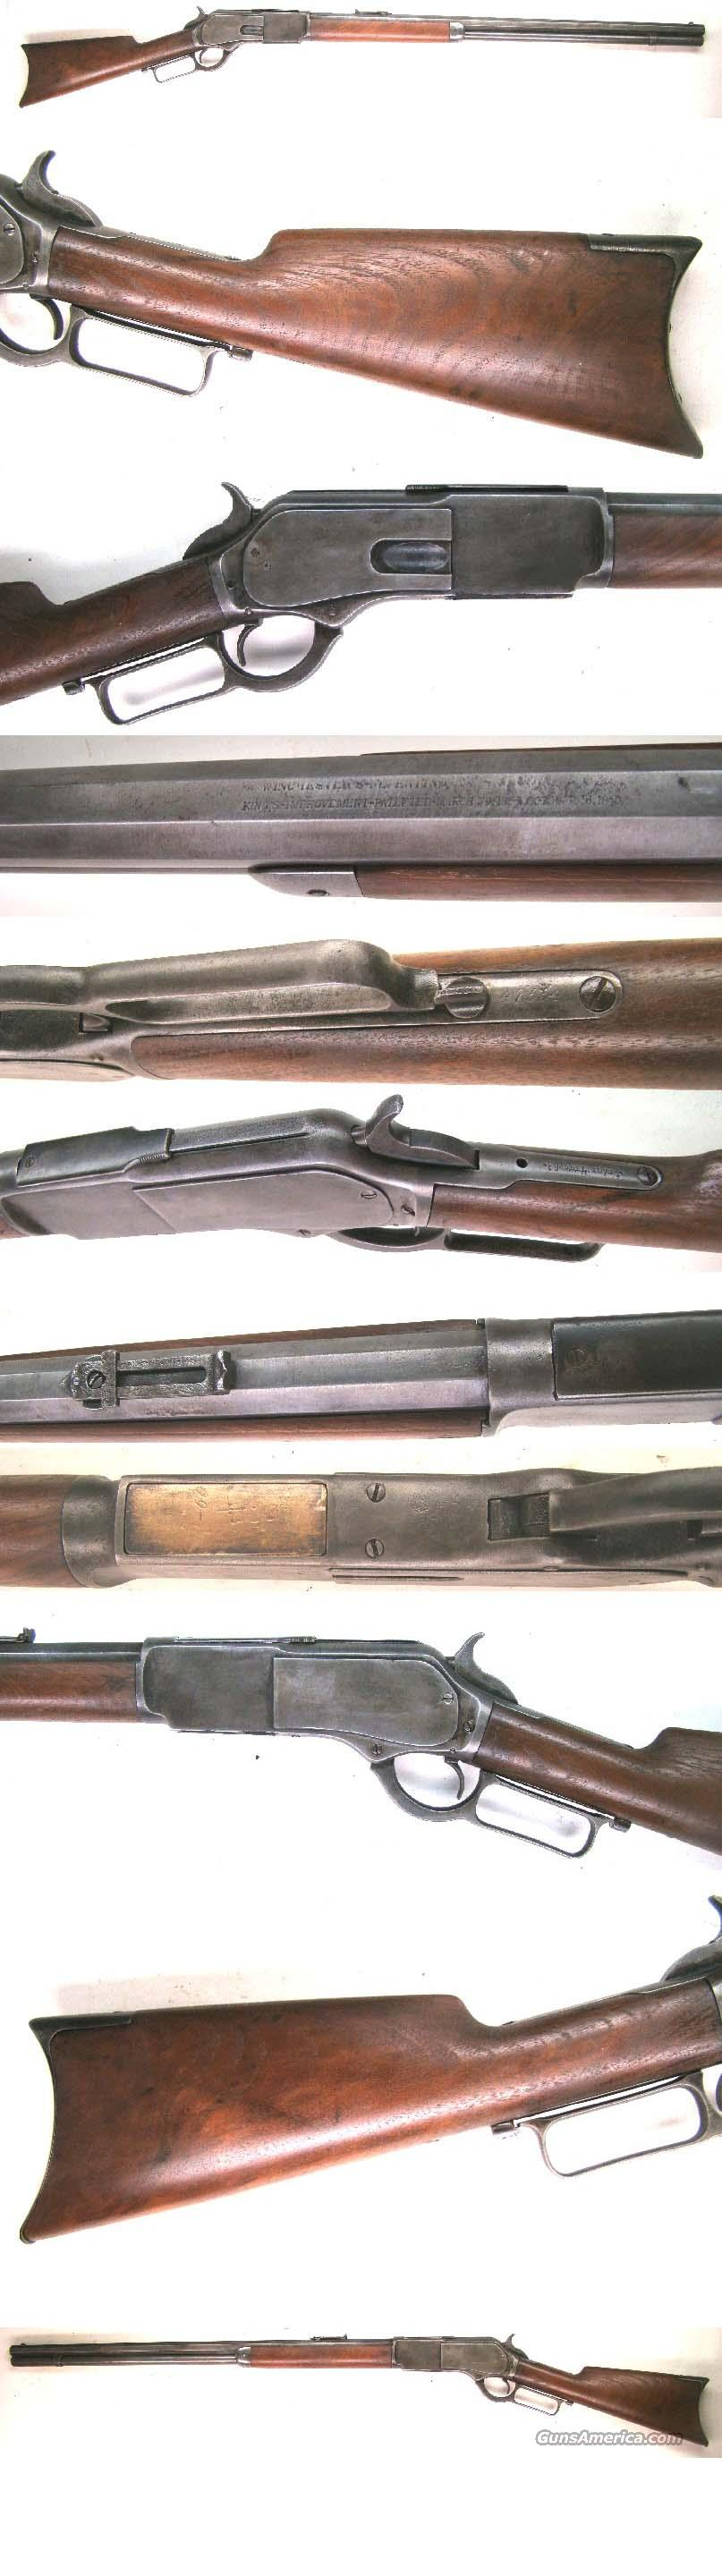 Winchester Model 1876 Rifle   Guns > Rifles > Winchester Rifles - Pre-1899 Lever